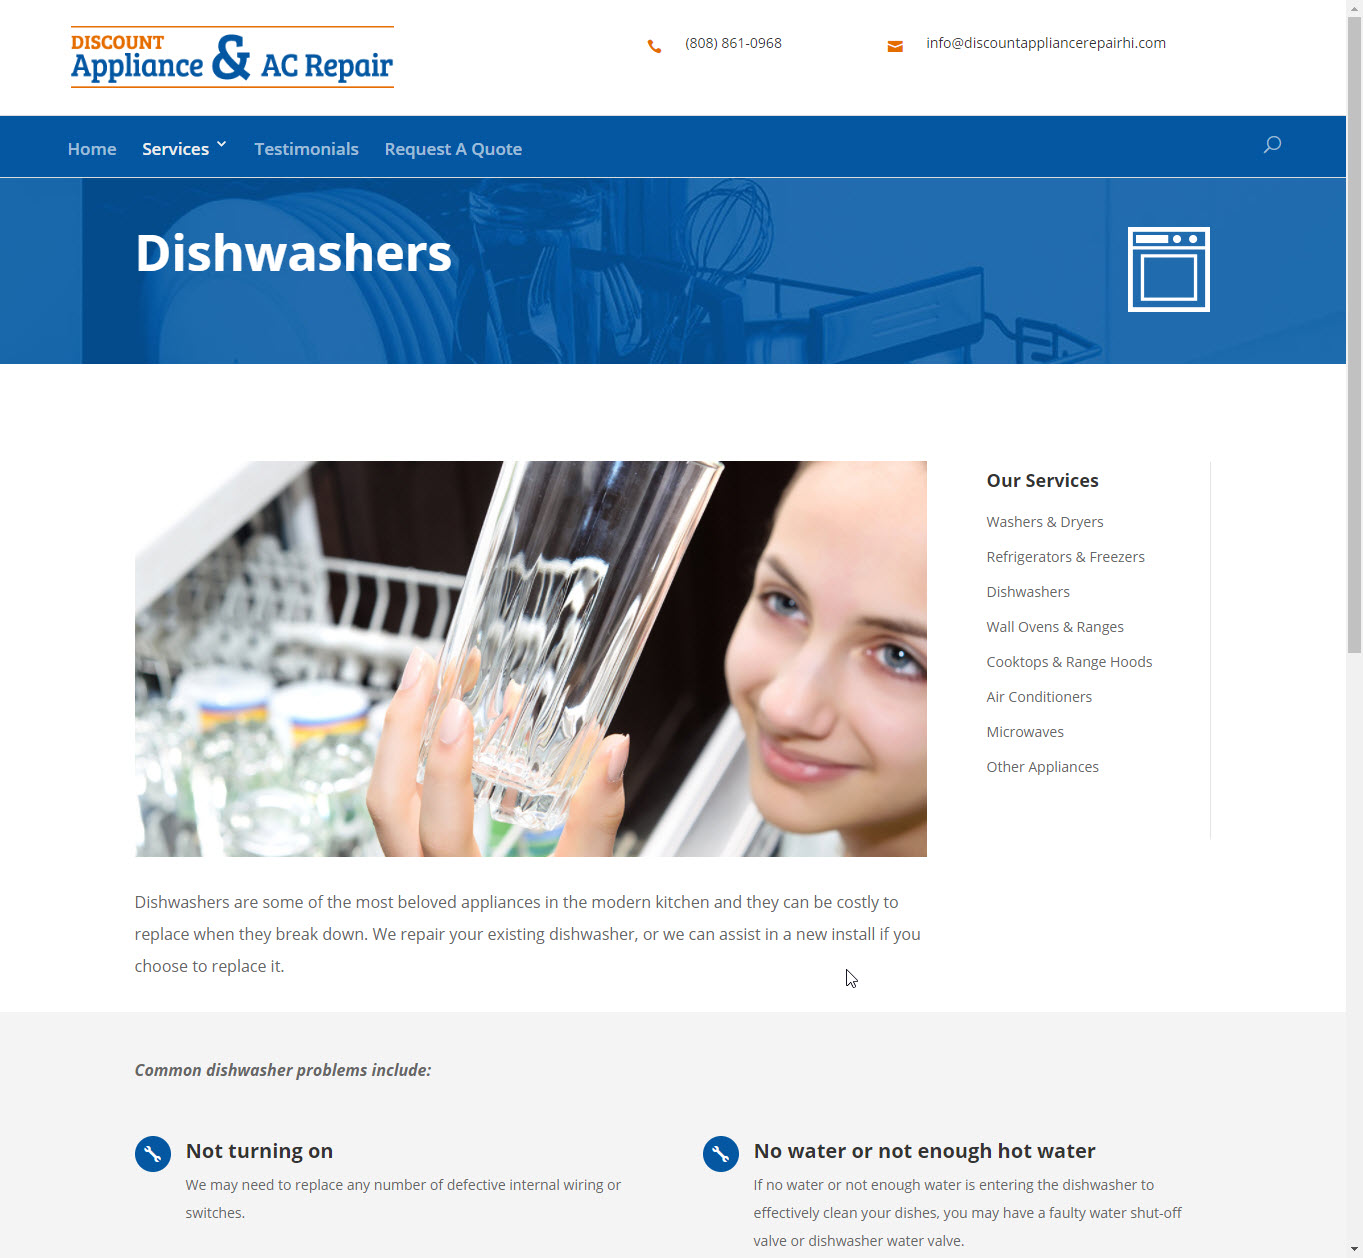 Discount Appliance and AC Repair